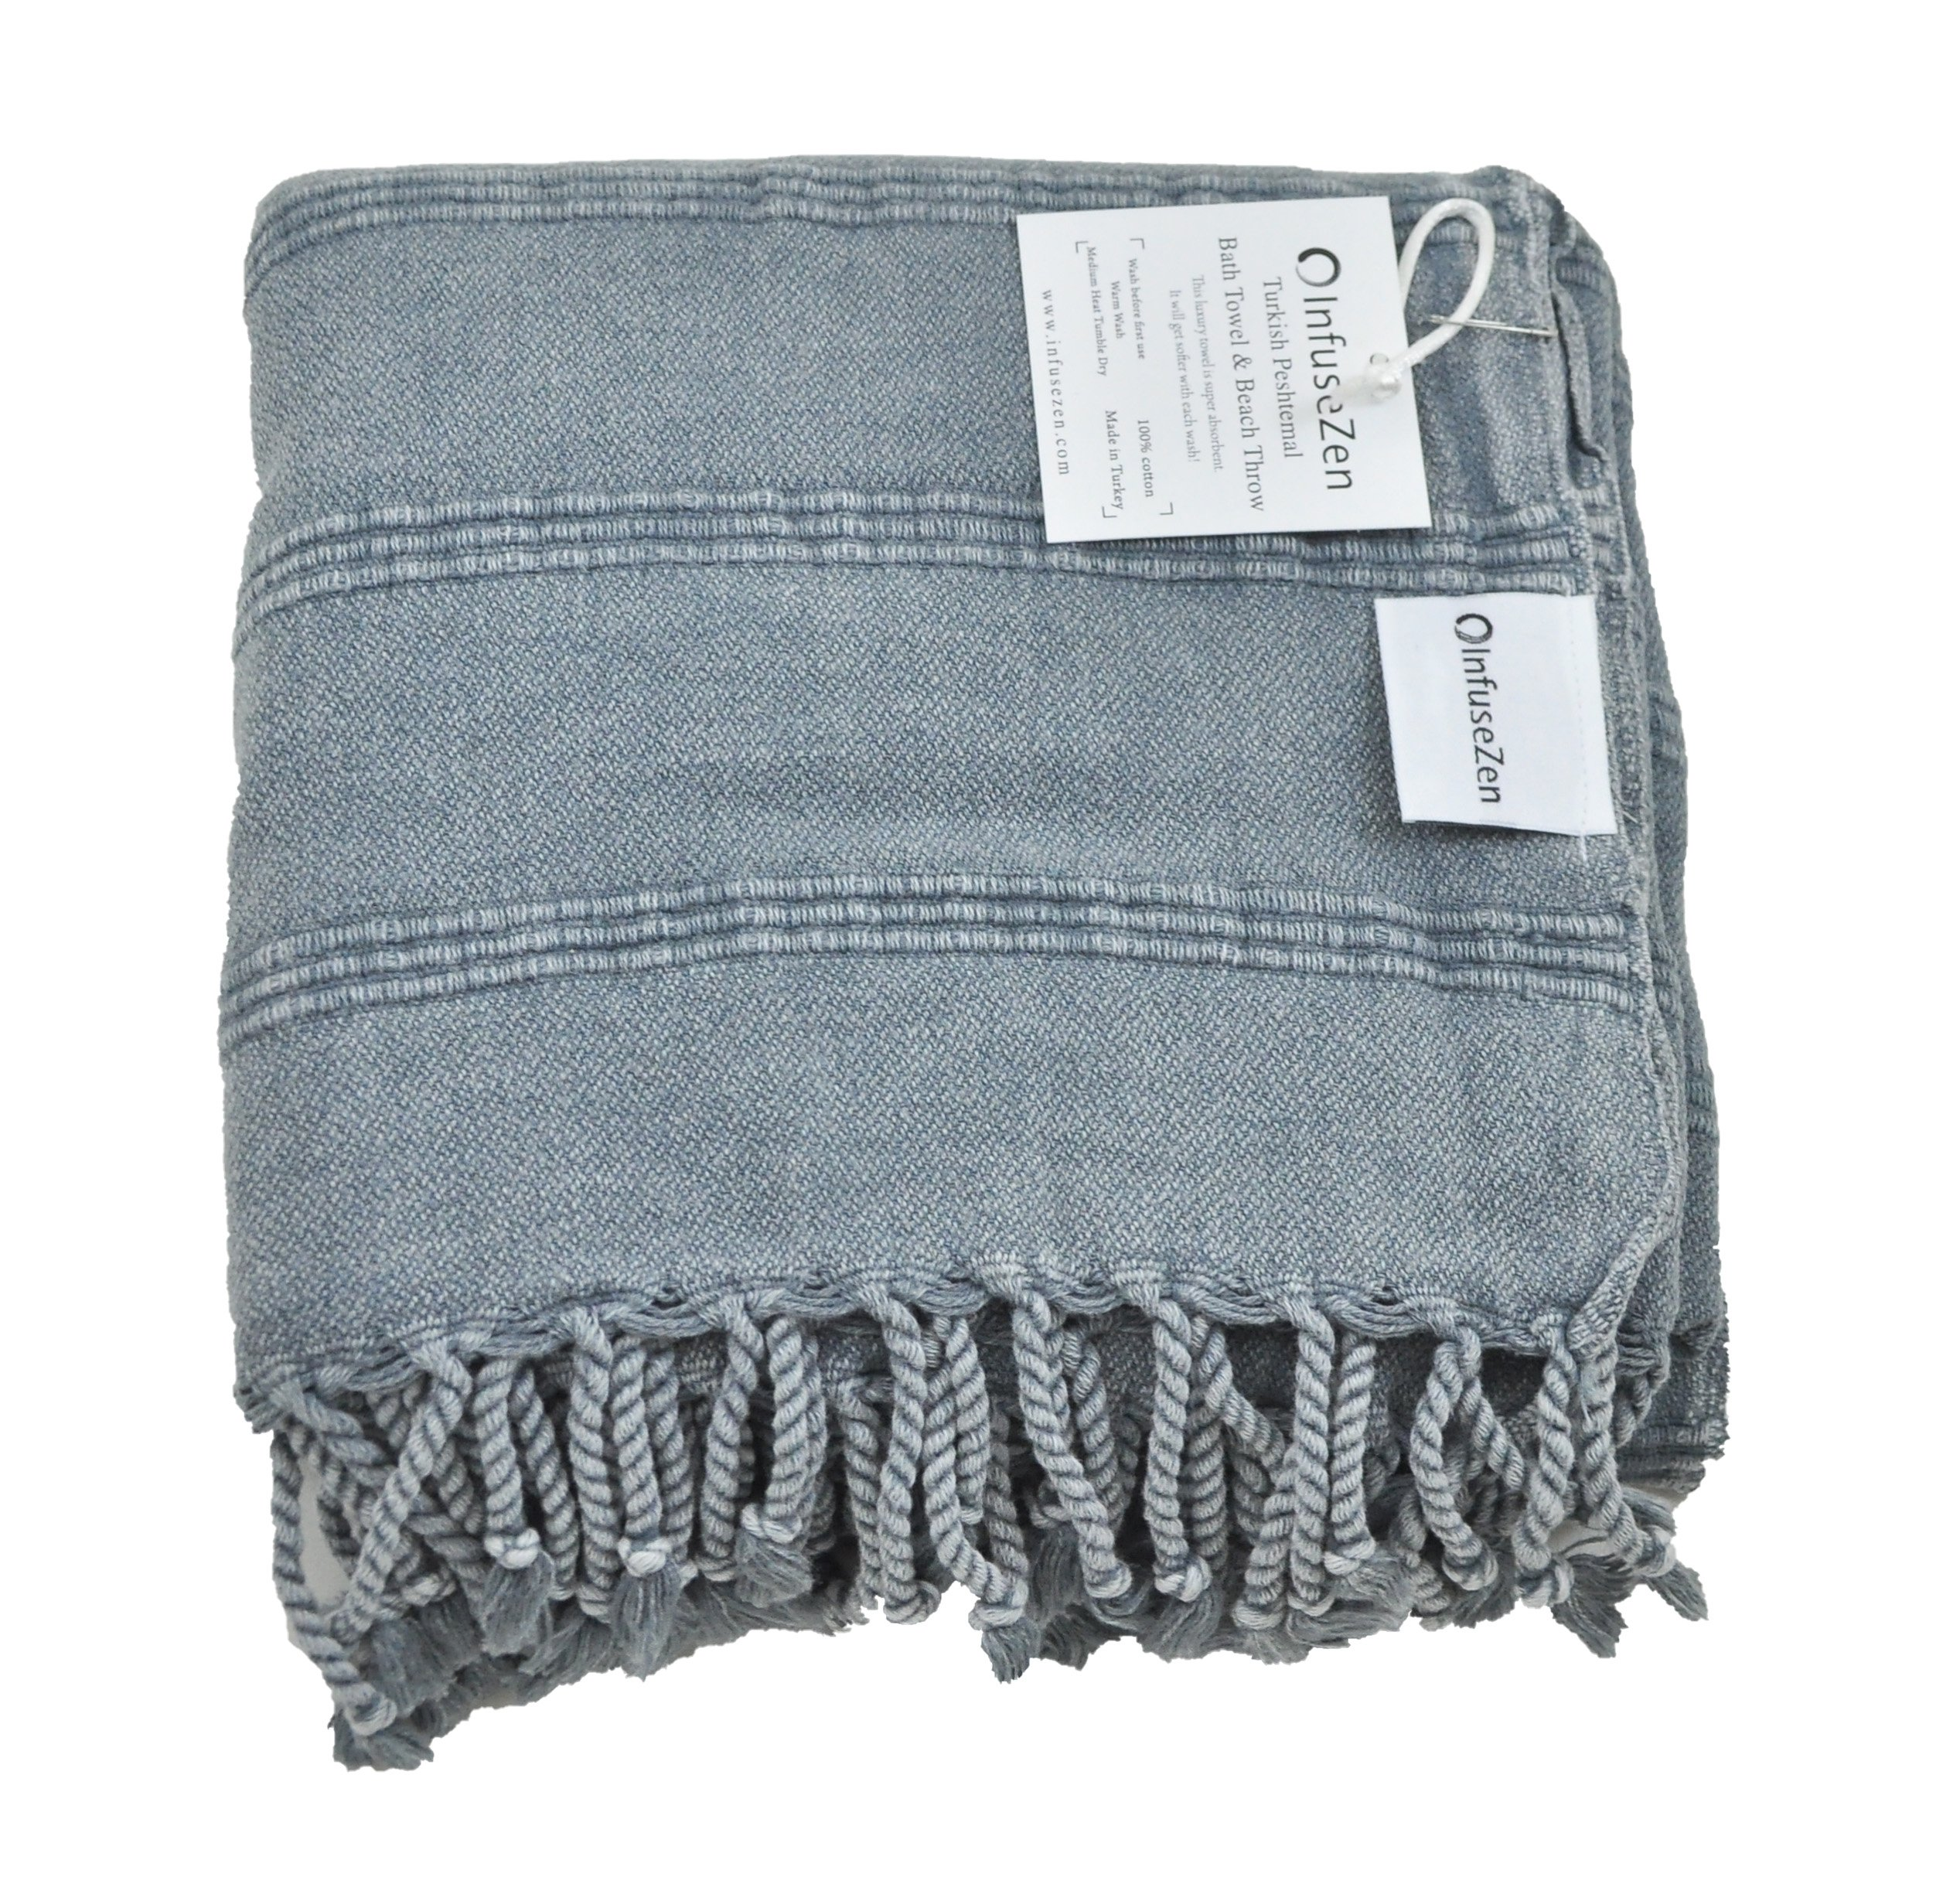 InfuseZen Stonewashed Turkish Towel, Unique Thin & Absorbent Bath Towel, Beach Towel and Pool Towel, Large Cotton Stone Washed Peshtemal Towels Weaved in Turkey, Hammam Spa Towels (Denim)